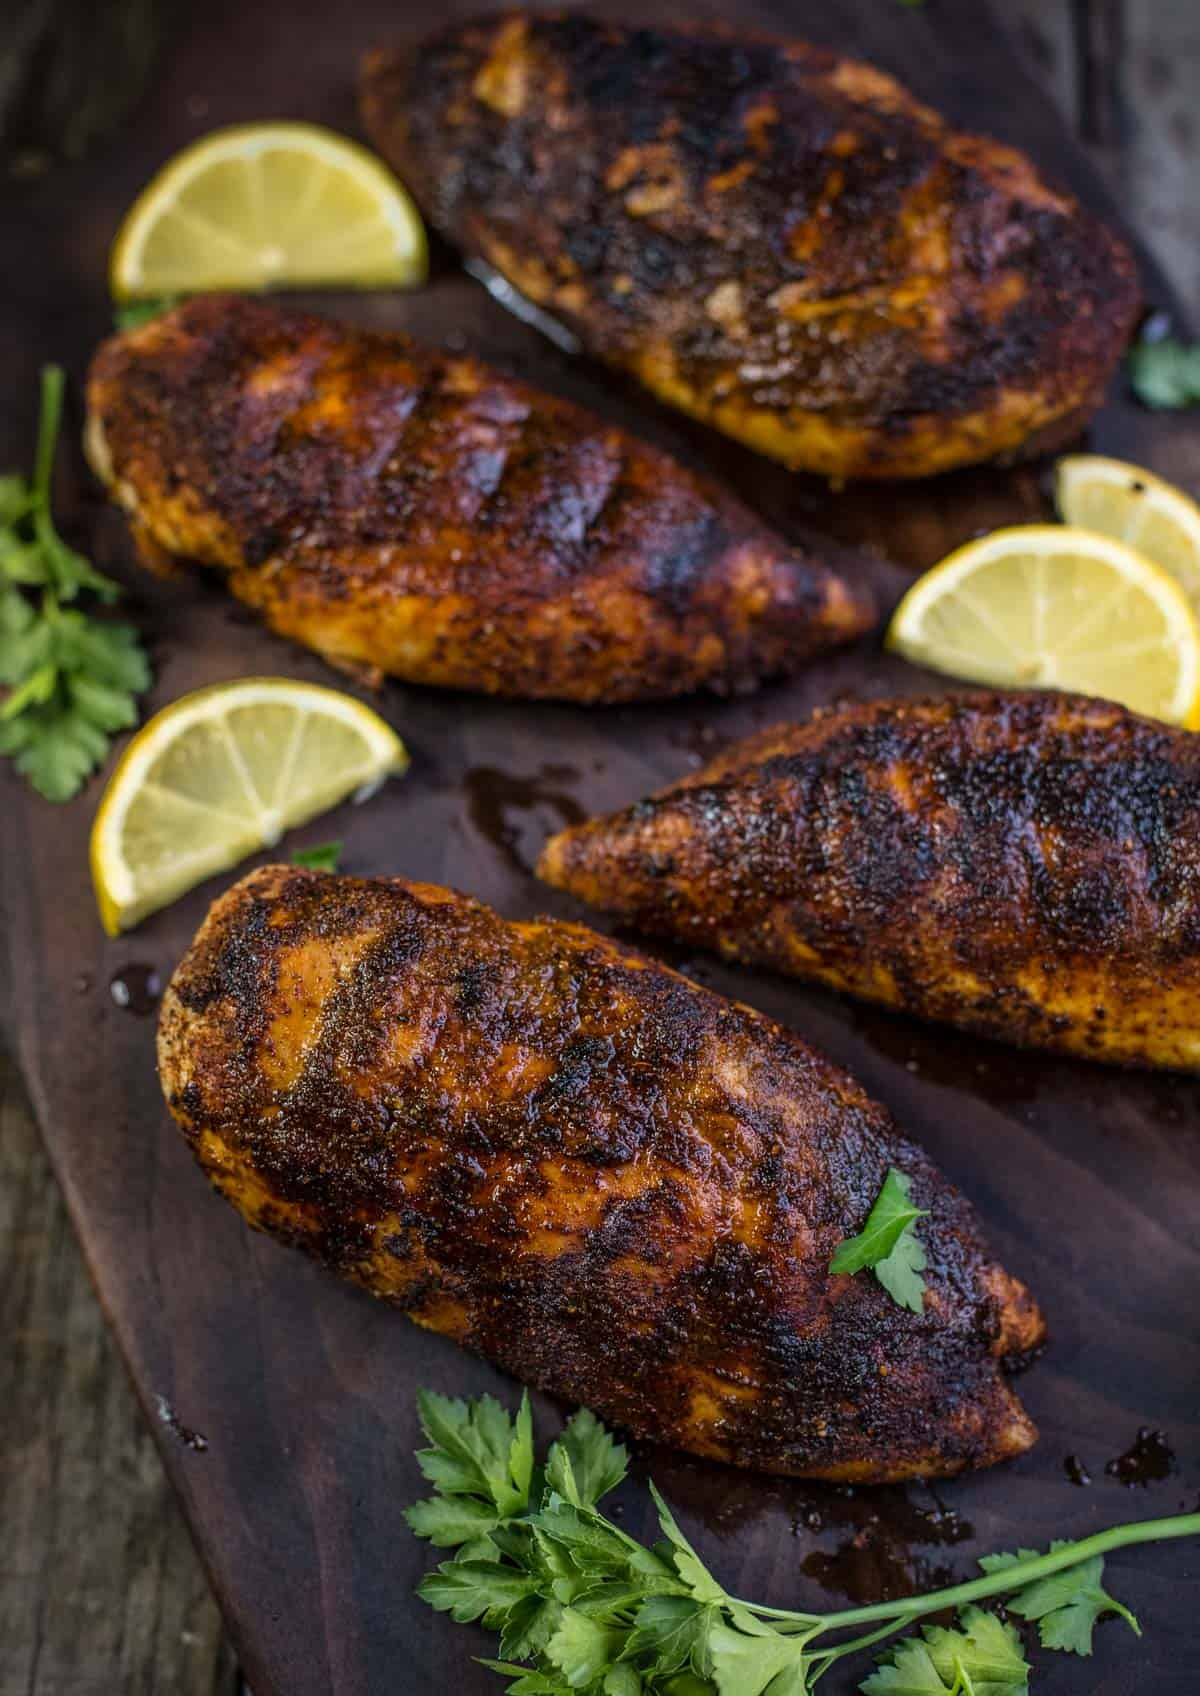 Blackened Chicken Breasts on a cutting board